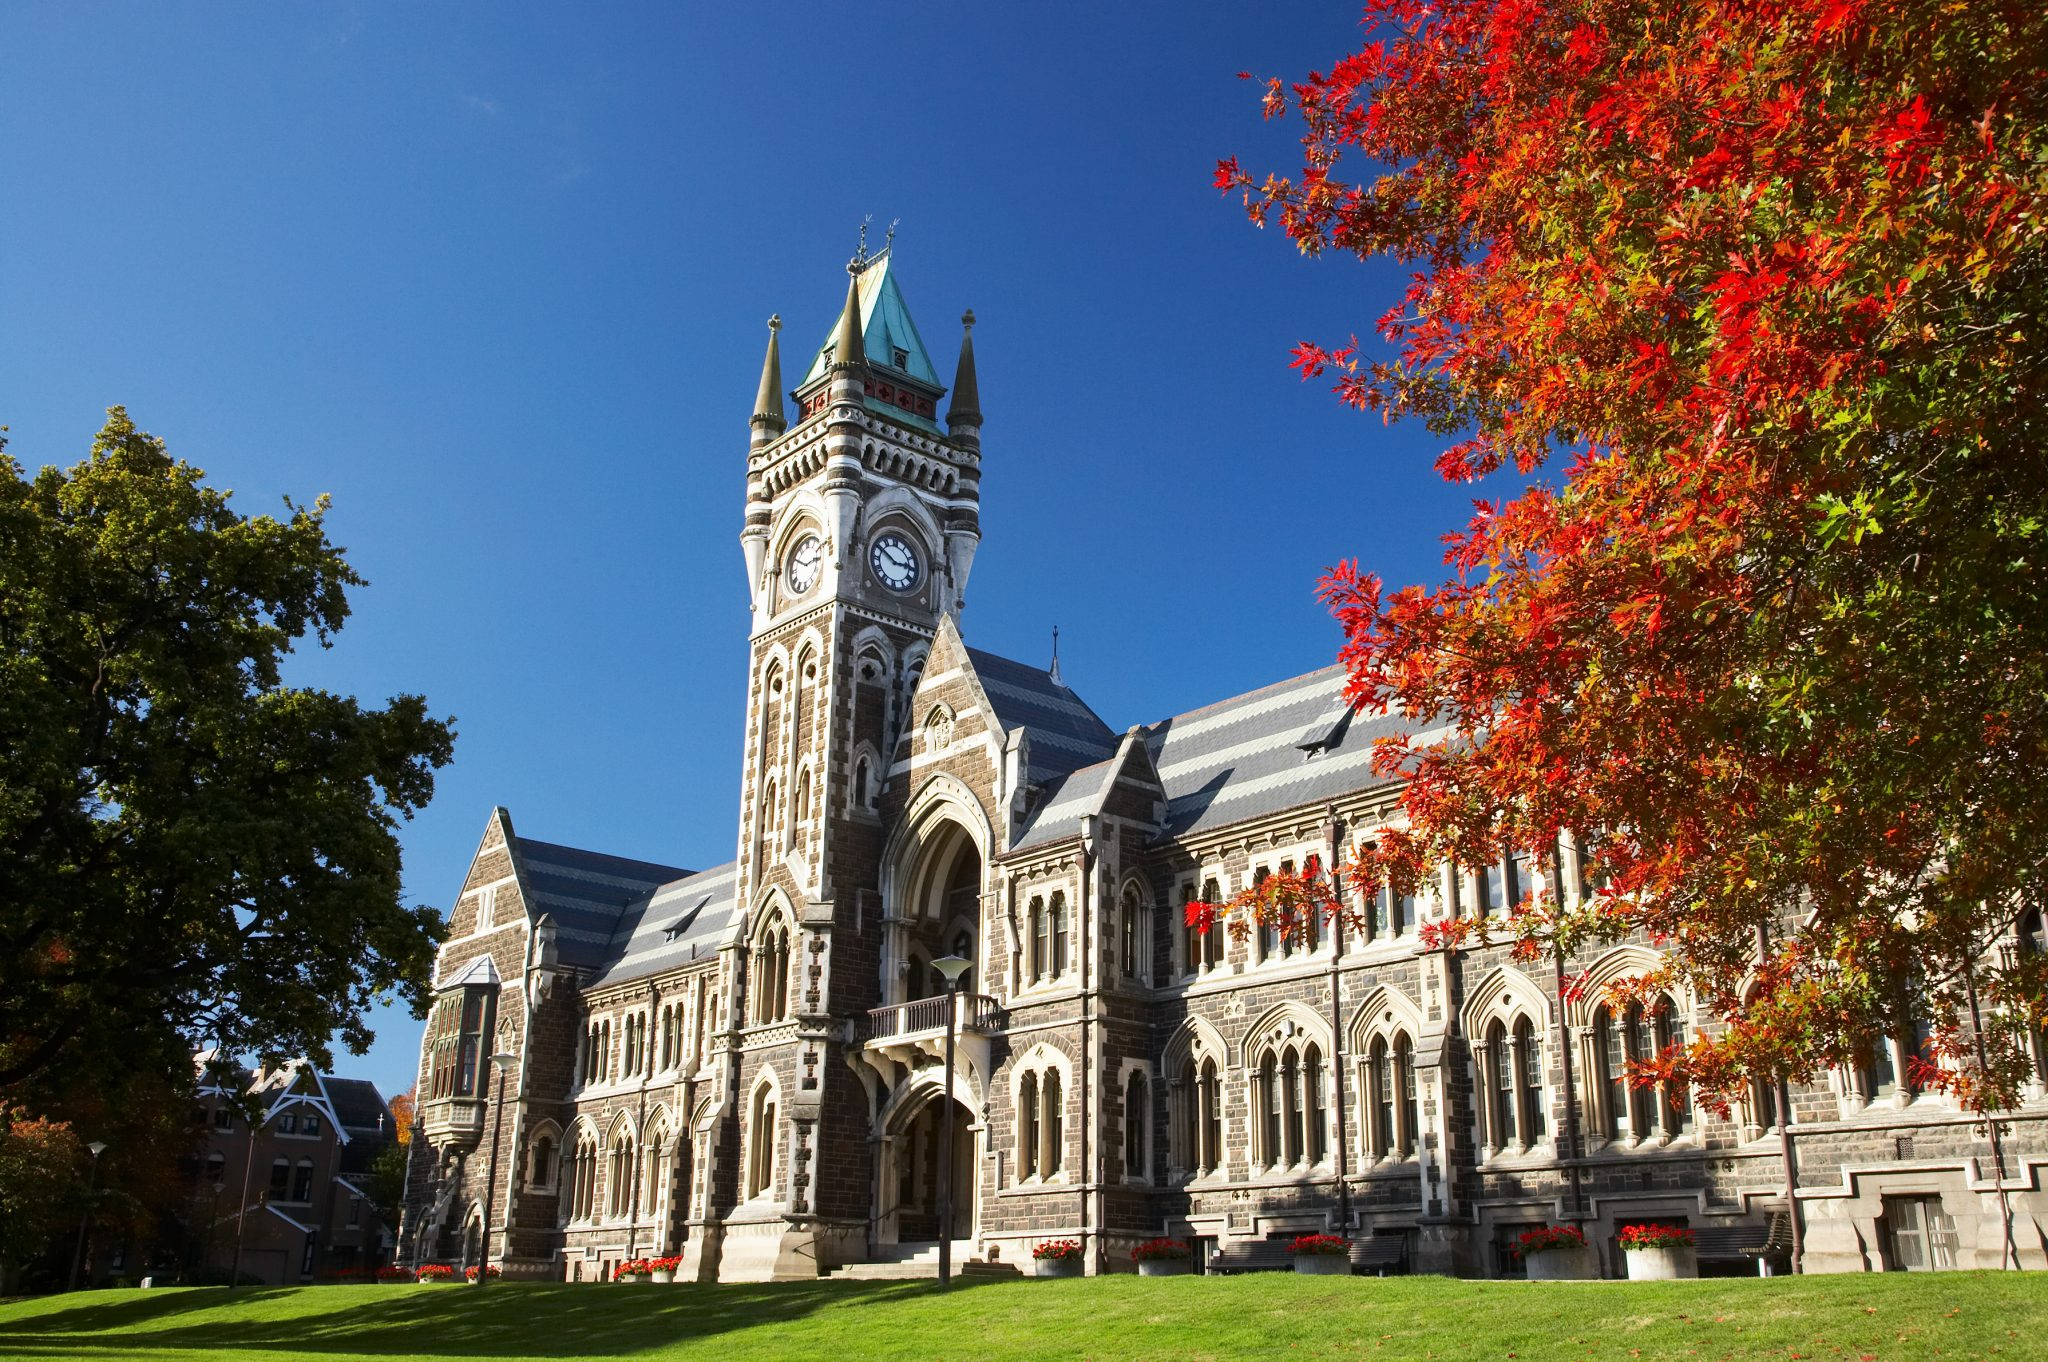 Otago Clocktower